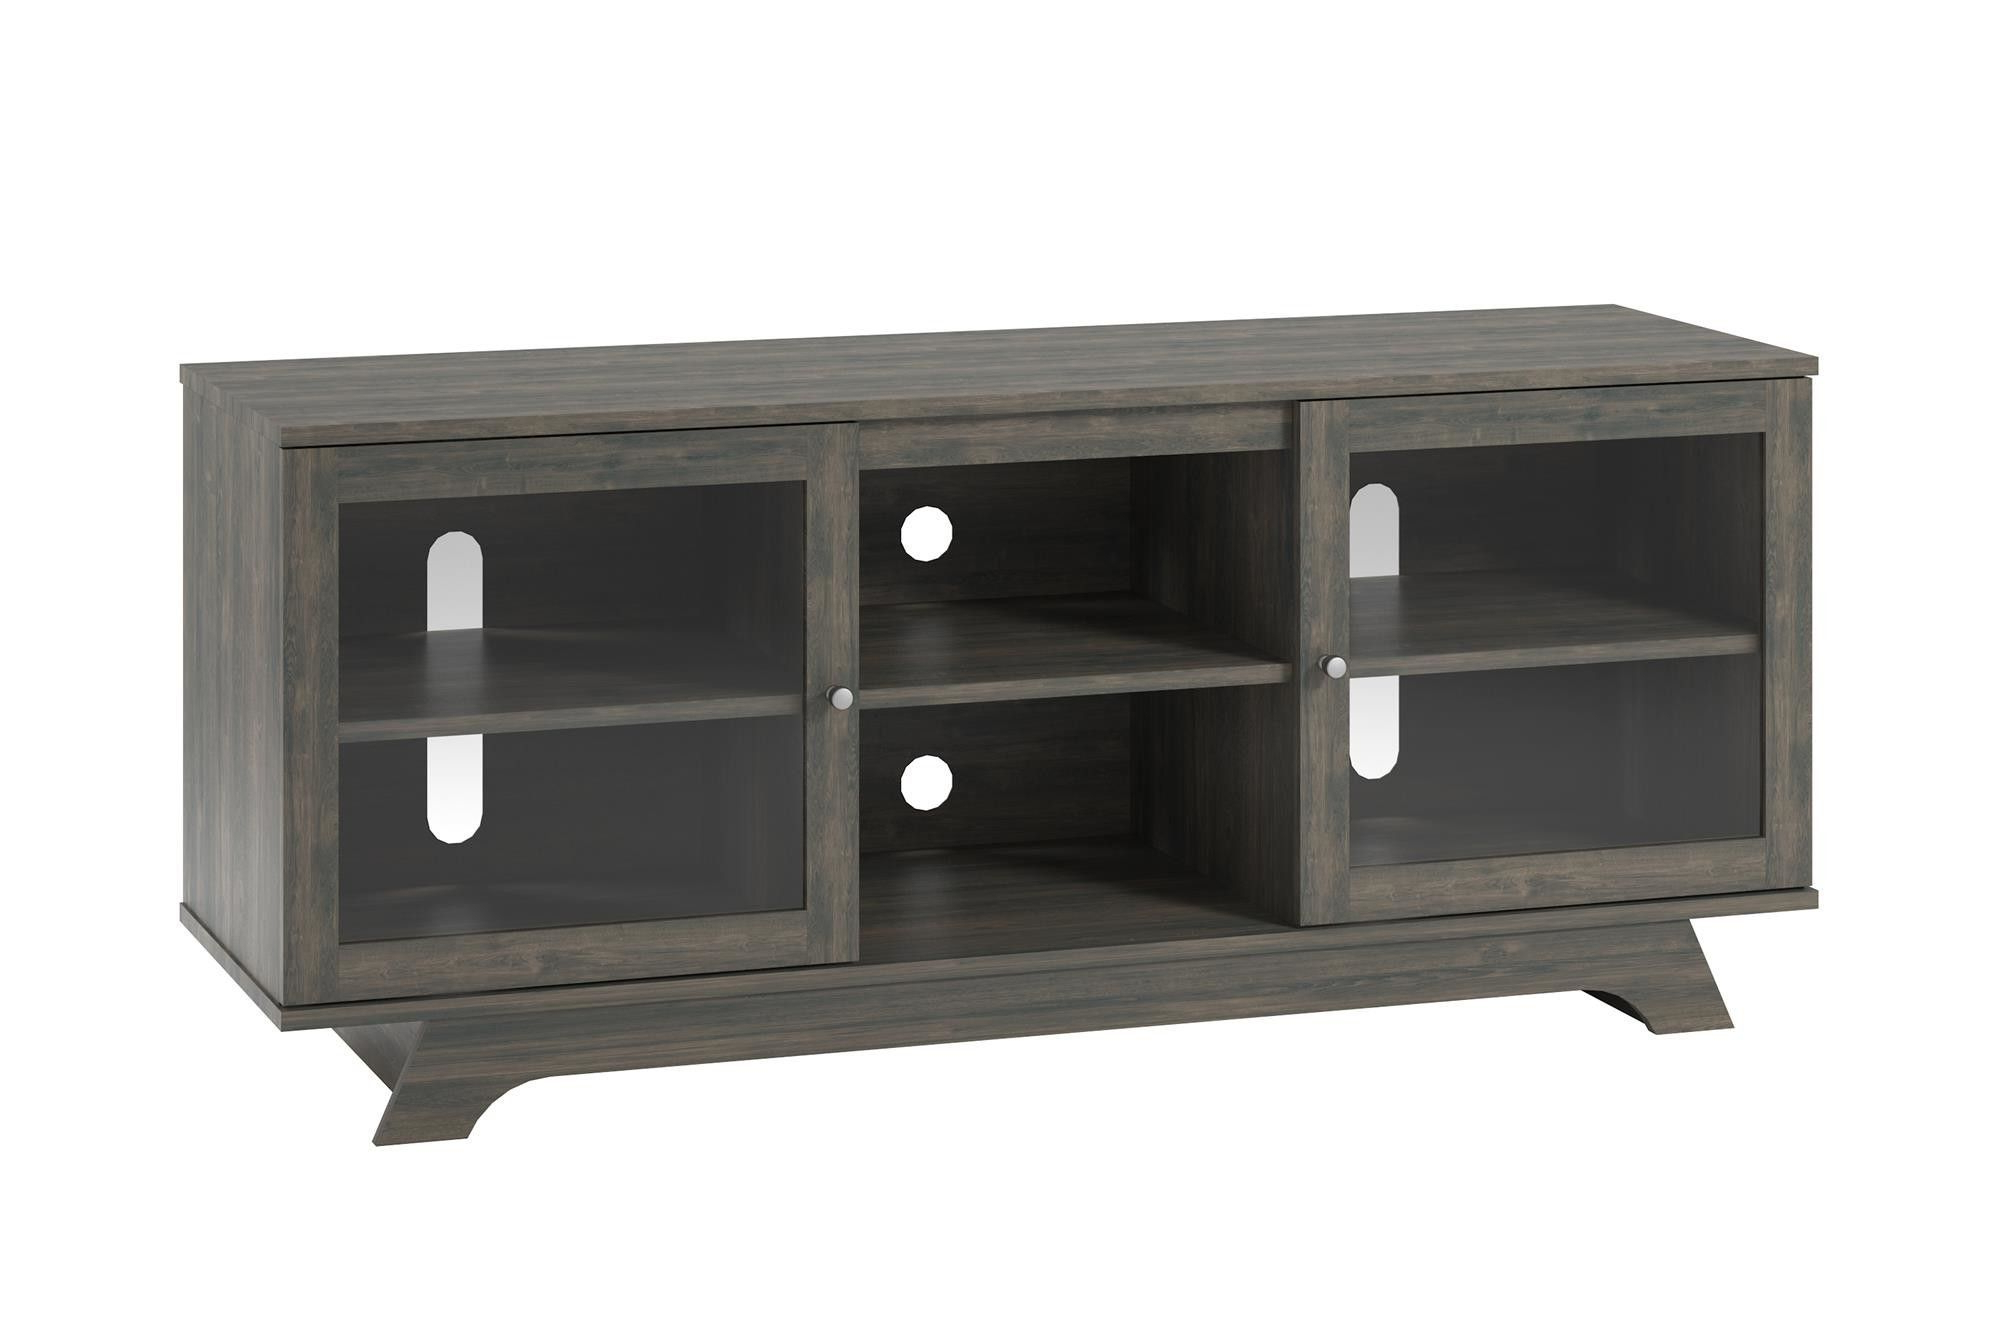 Floating Wooden Tv Stand Cabinet With Doors That Enclose And Drawers For Well Known Enclosed Tv Cabinets With Doors (Gallery 20 of 20)